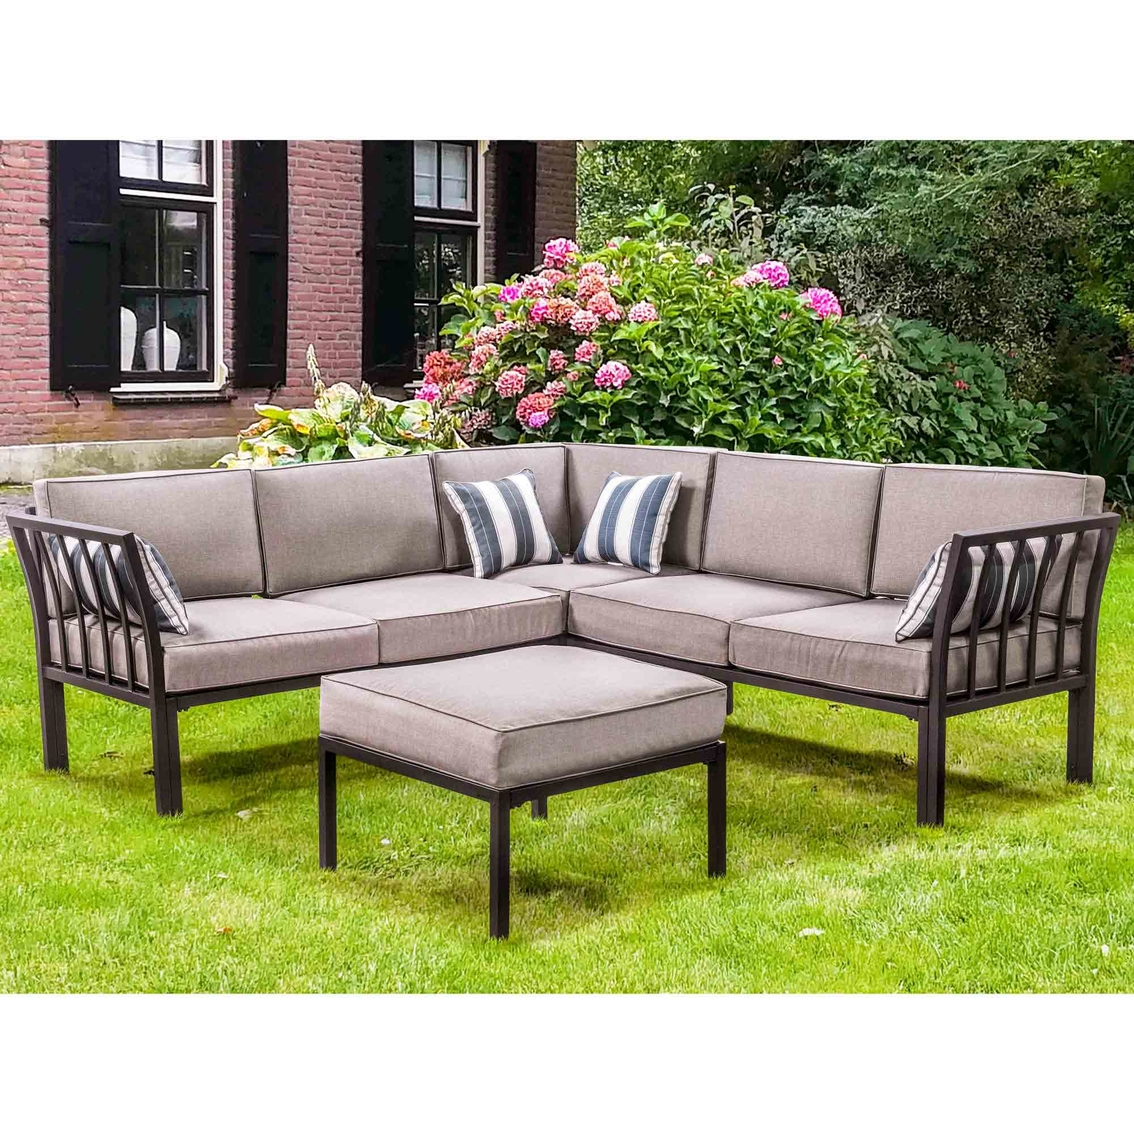 Courtyard Creations Mission Ridge 4 Pc. Sectional Sofa Set ...